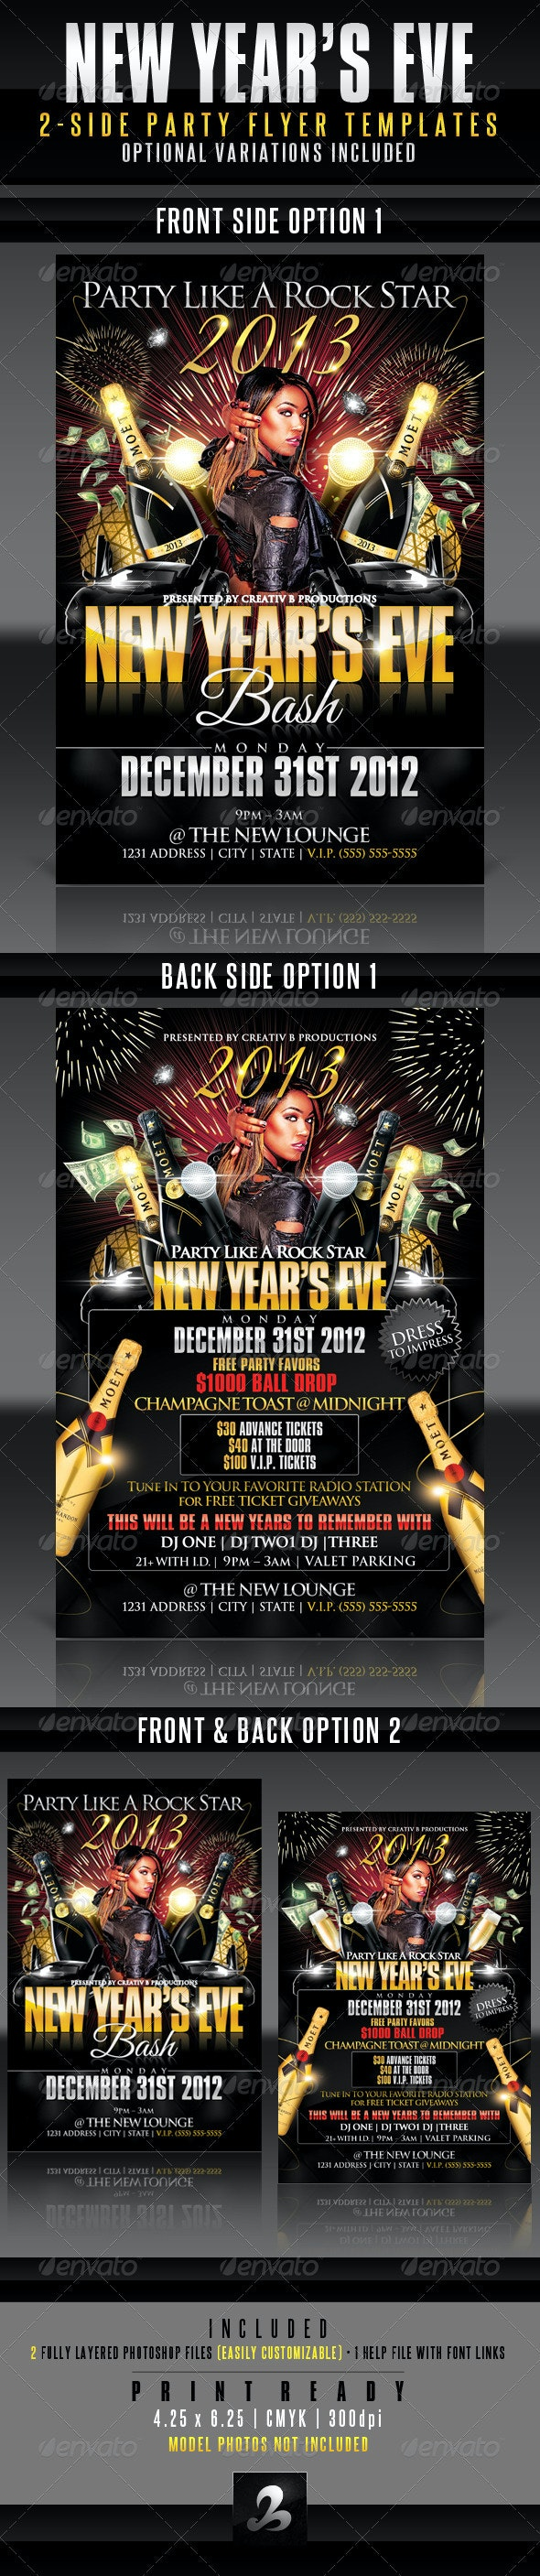 New Year's Eve Party Flyer Templates - Clubs & Parties Events